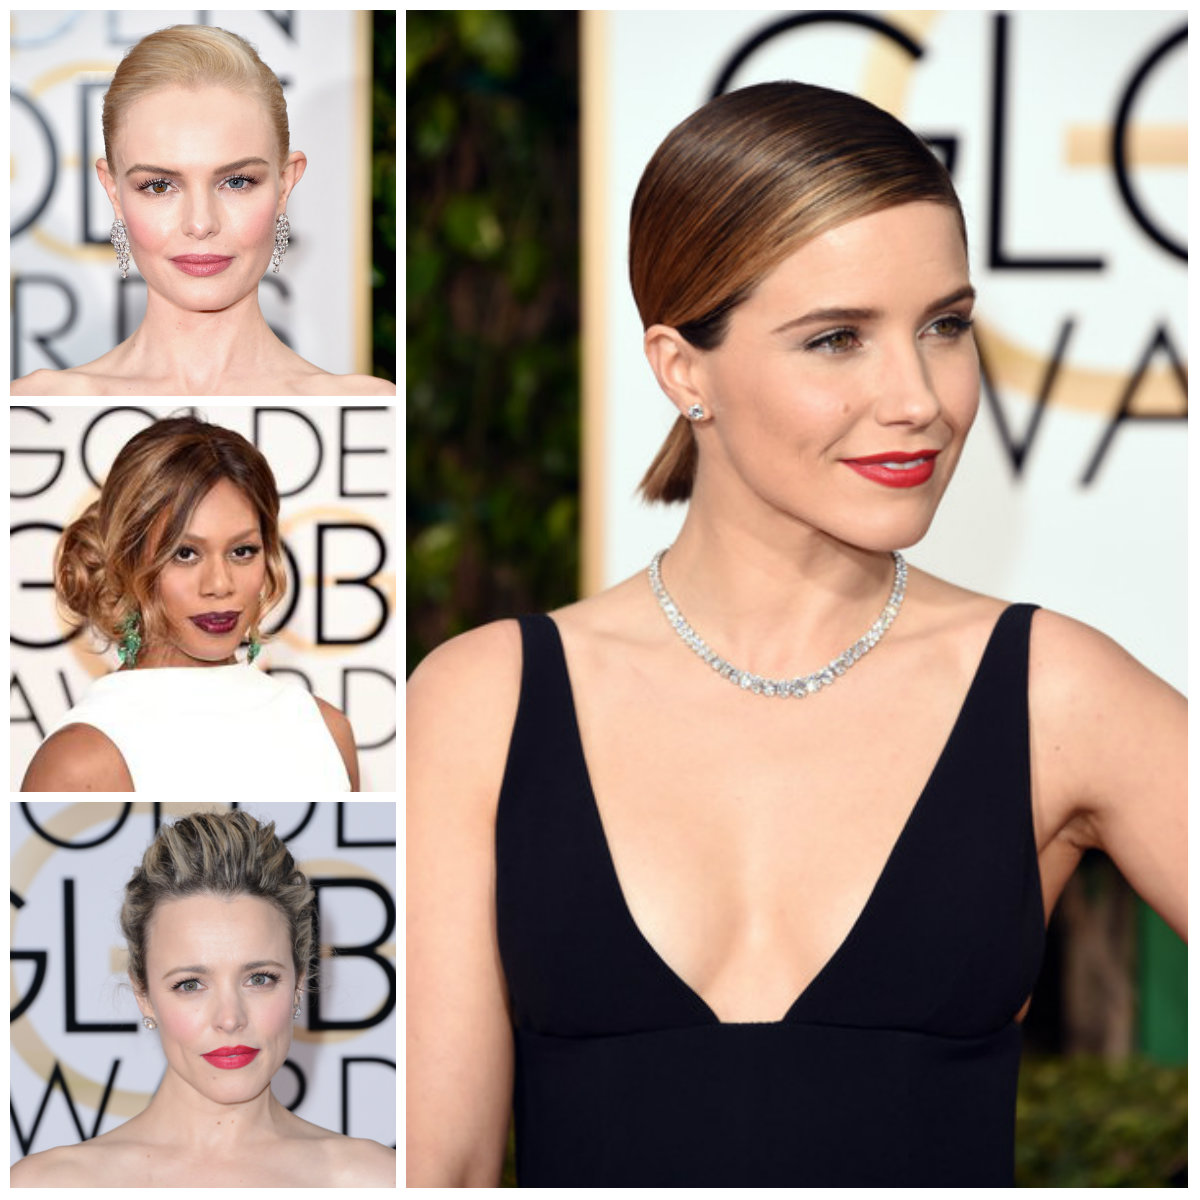 "Coolest updos by celebrities ""width ="" 500 ""height ="" 500 ""data-jpibfi-post-excerpt ="" ""data-jpibfi-post-url ="" http://www.frisuren-2018.com/coolest-up-shoes- von-promis / ""data-jpibfi-post-title ="" Coolest updos by celebrities ""data-jpibfi-src ="" http://www.frisuren-2018.com/wp-content/uploads/2019/05/Coolste- Updating-by-Promis.jpg ""/> With this in mind, we've come up with the best options for all the ladies who want to get the attention and the feeling of being beautiful. Read on now and watch the prom dresses of celebrities, that you can wear either on your big day or somewhere else, just pick the best updo that suits your nature.<span id="